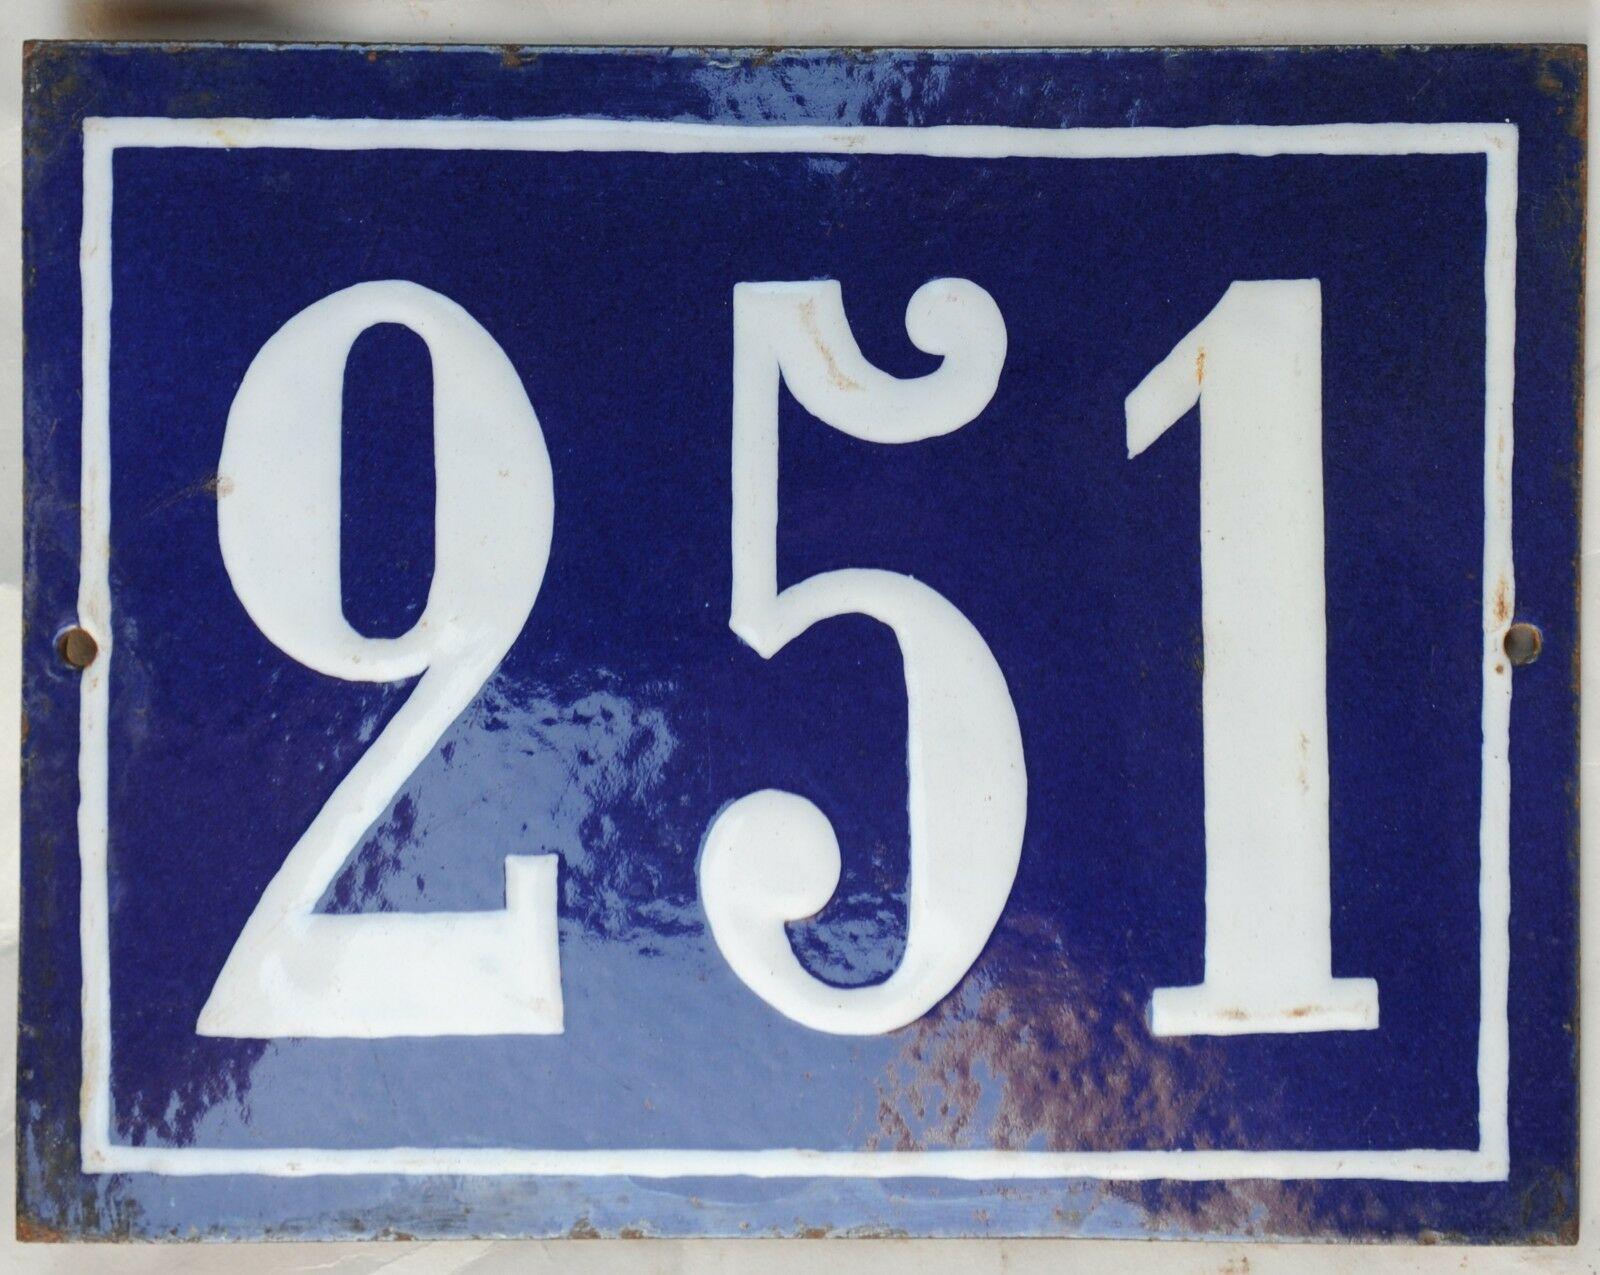 Large old French house number 251 door gate plate plaque enamel steel metal sign